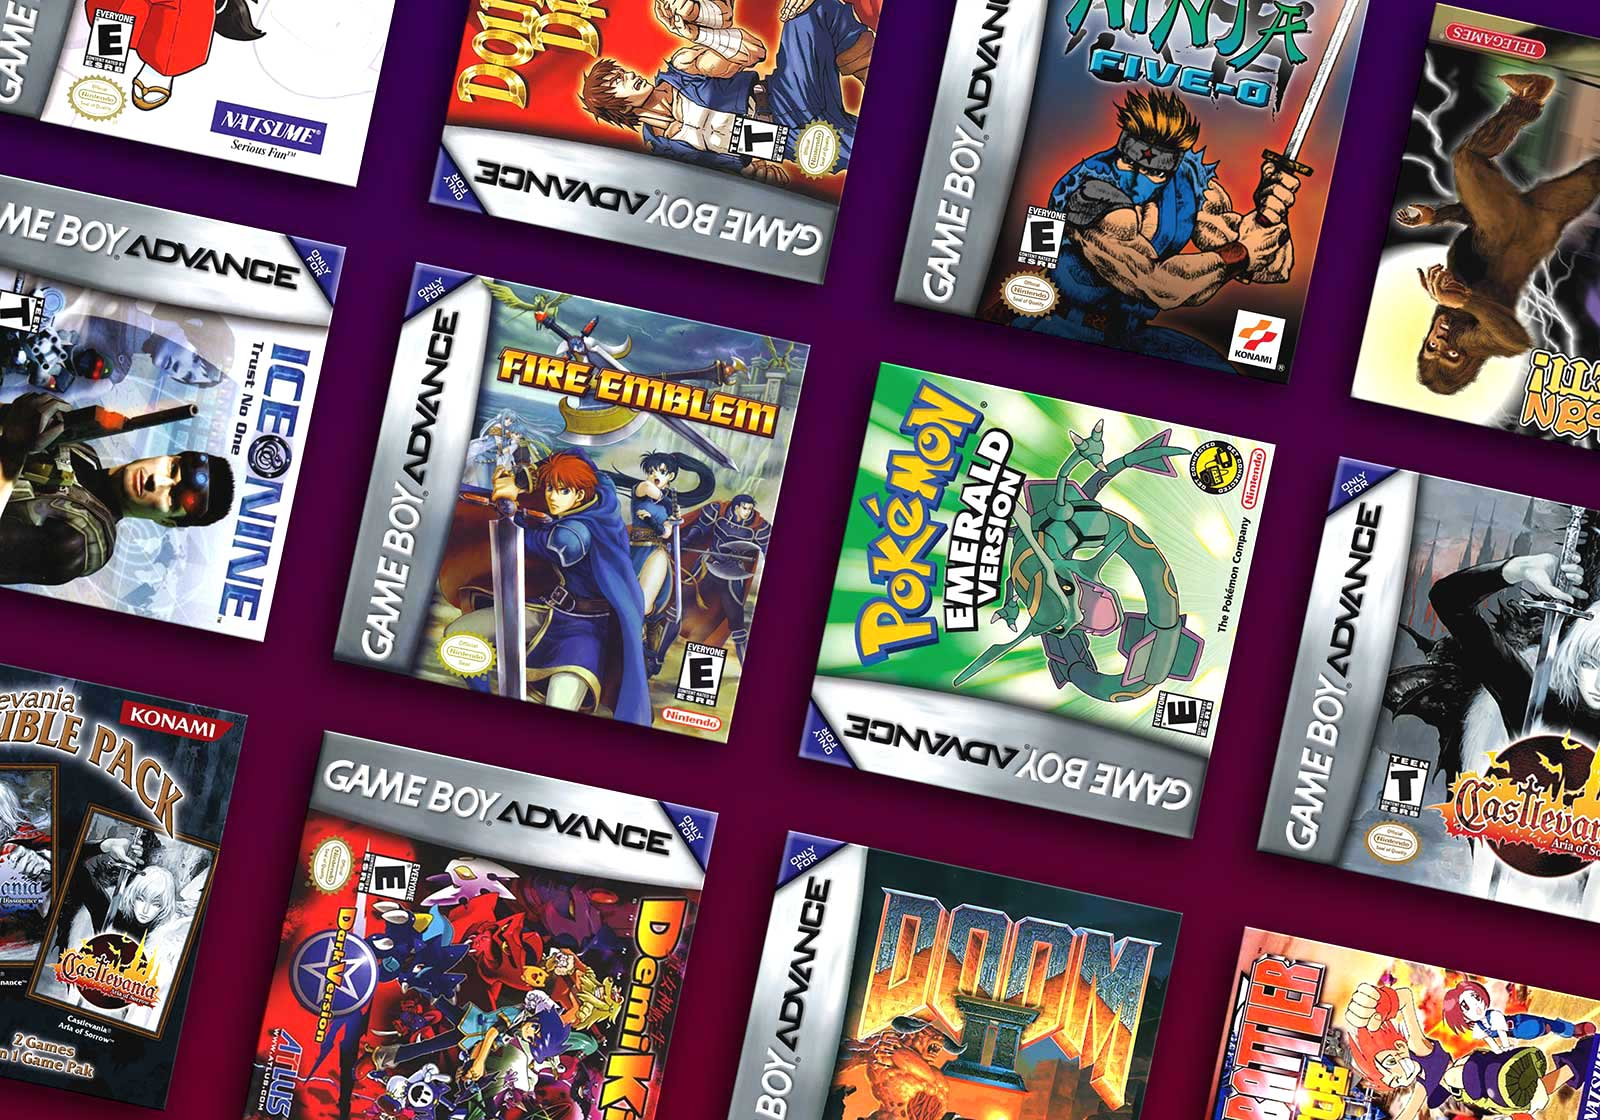 The Rarest & Most Valuable Game Boy Advance (GBA) Games